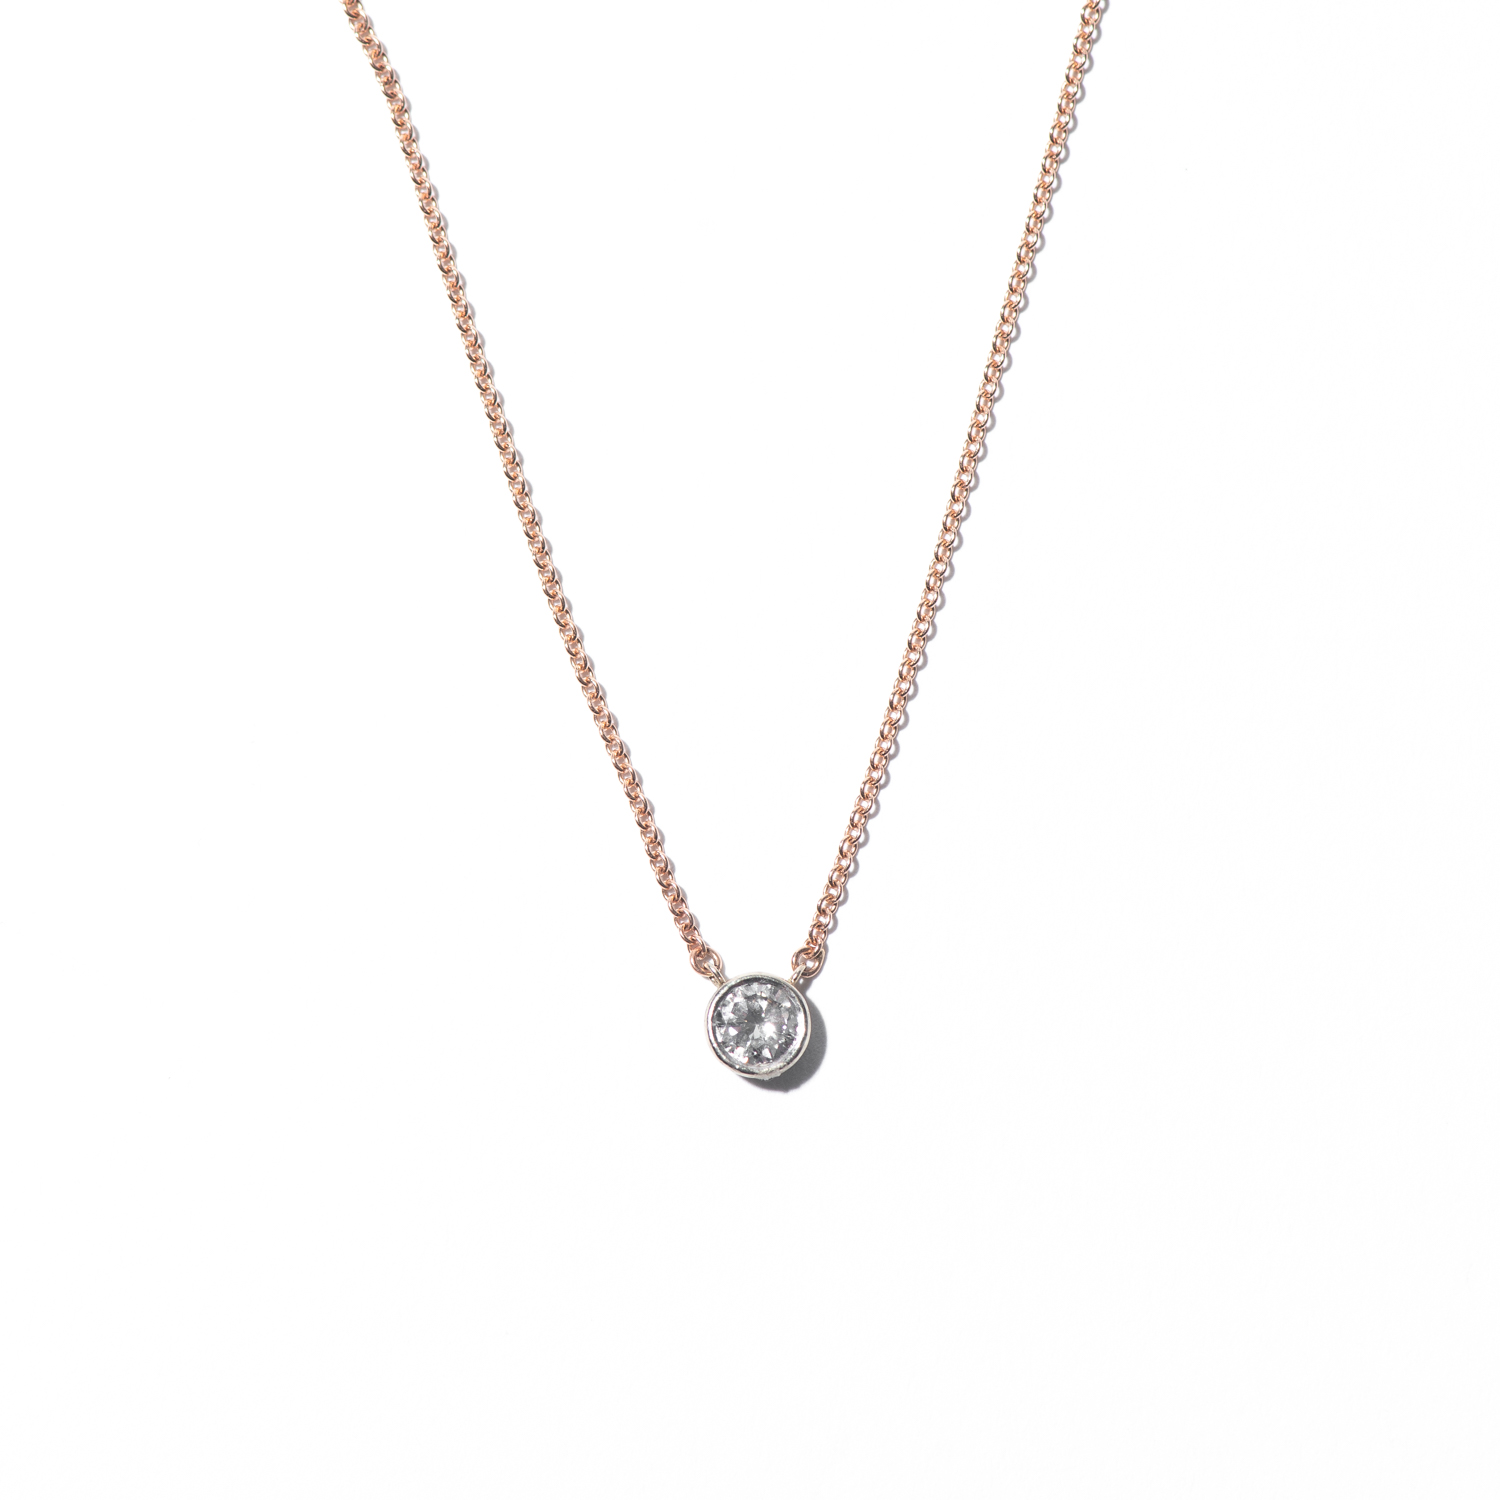 Design Twenty Four. - Rose Gold Diamond Pendant Necklace